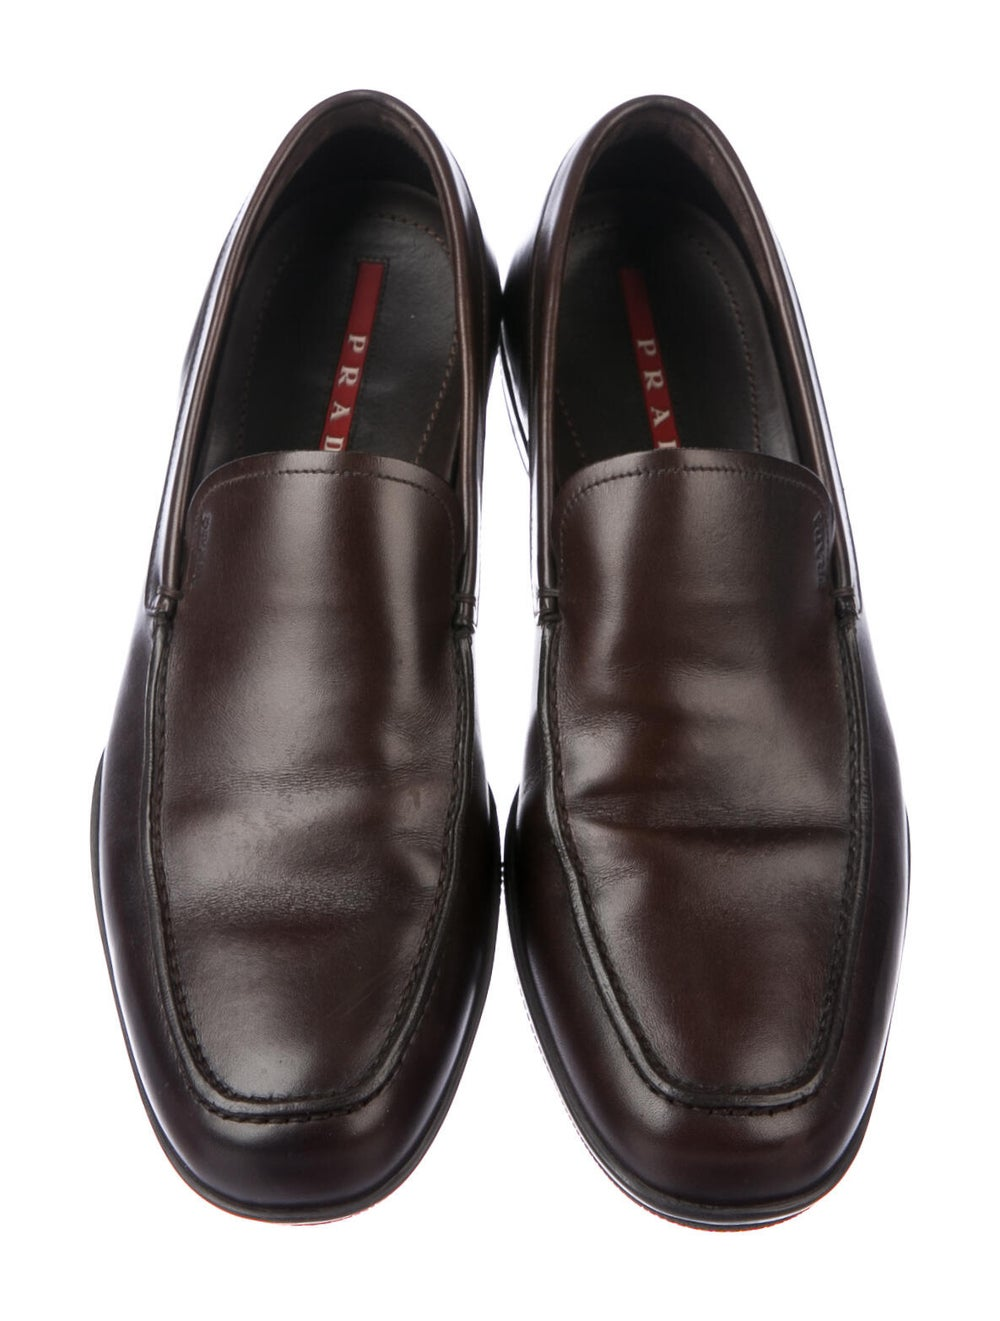 Prada Sport Leather Loafers Brown - image 3